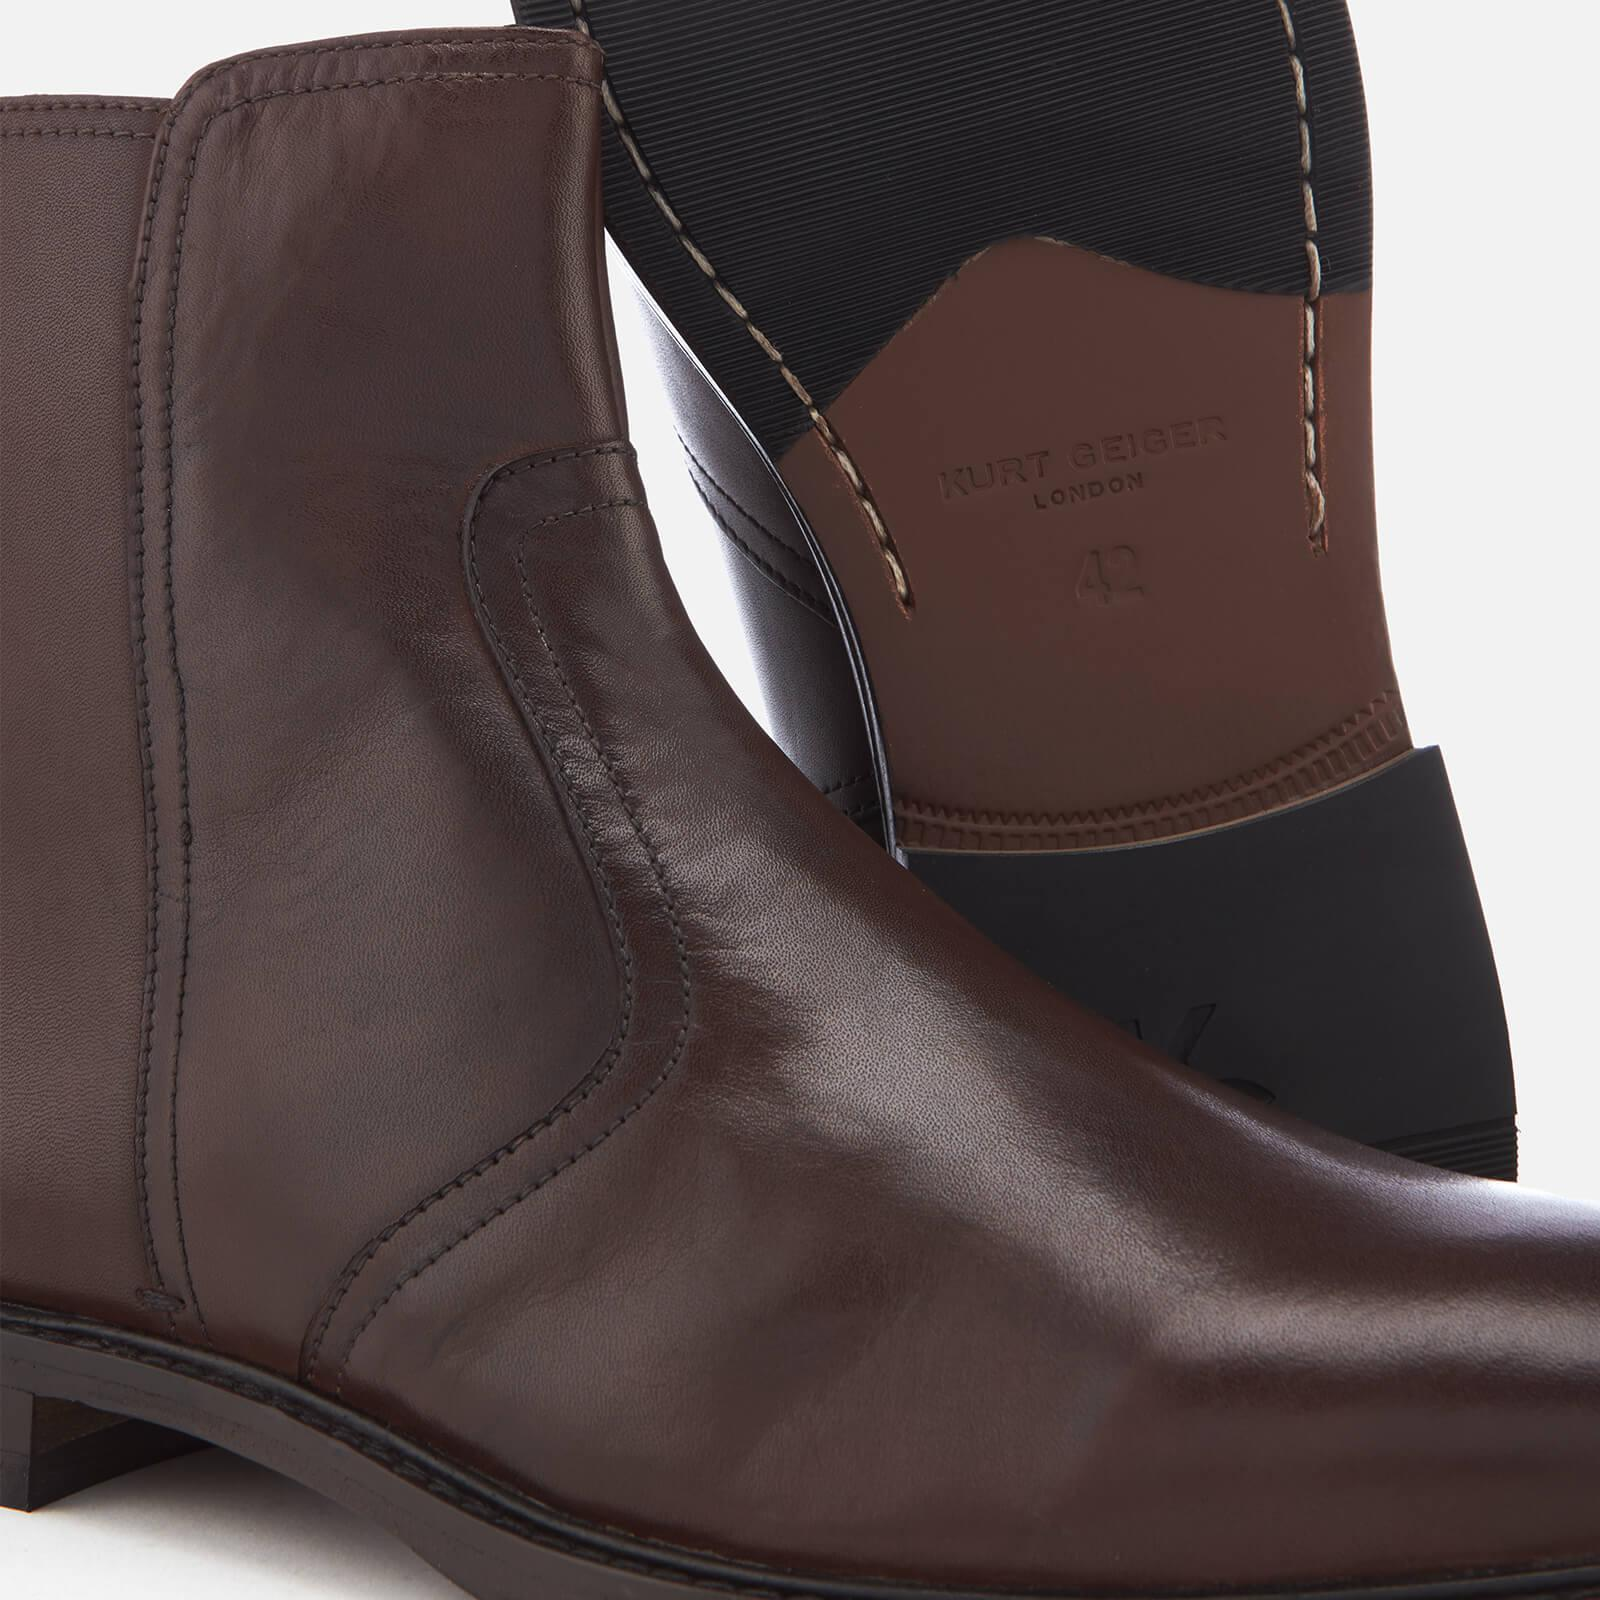 later reputable site entire collection Kurt Geiger Bournemouth Leather Ankle Boots in Brown for Men - Lyst